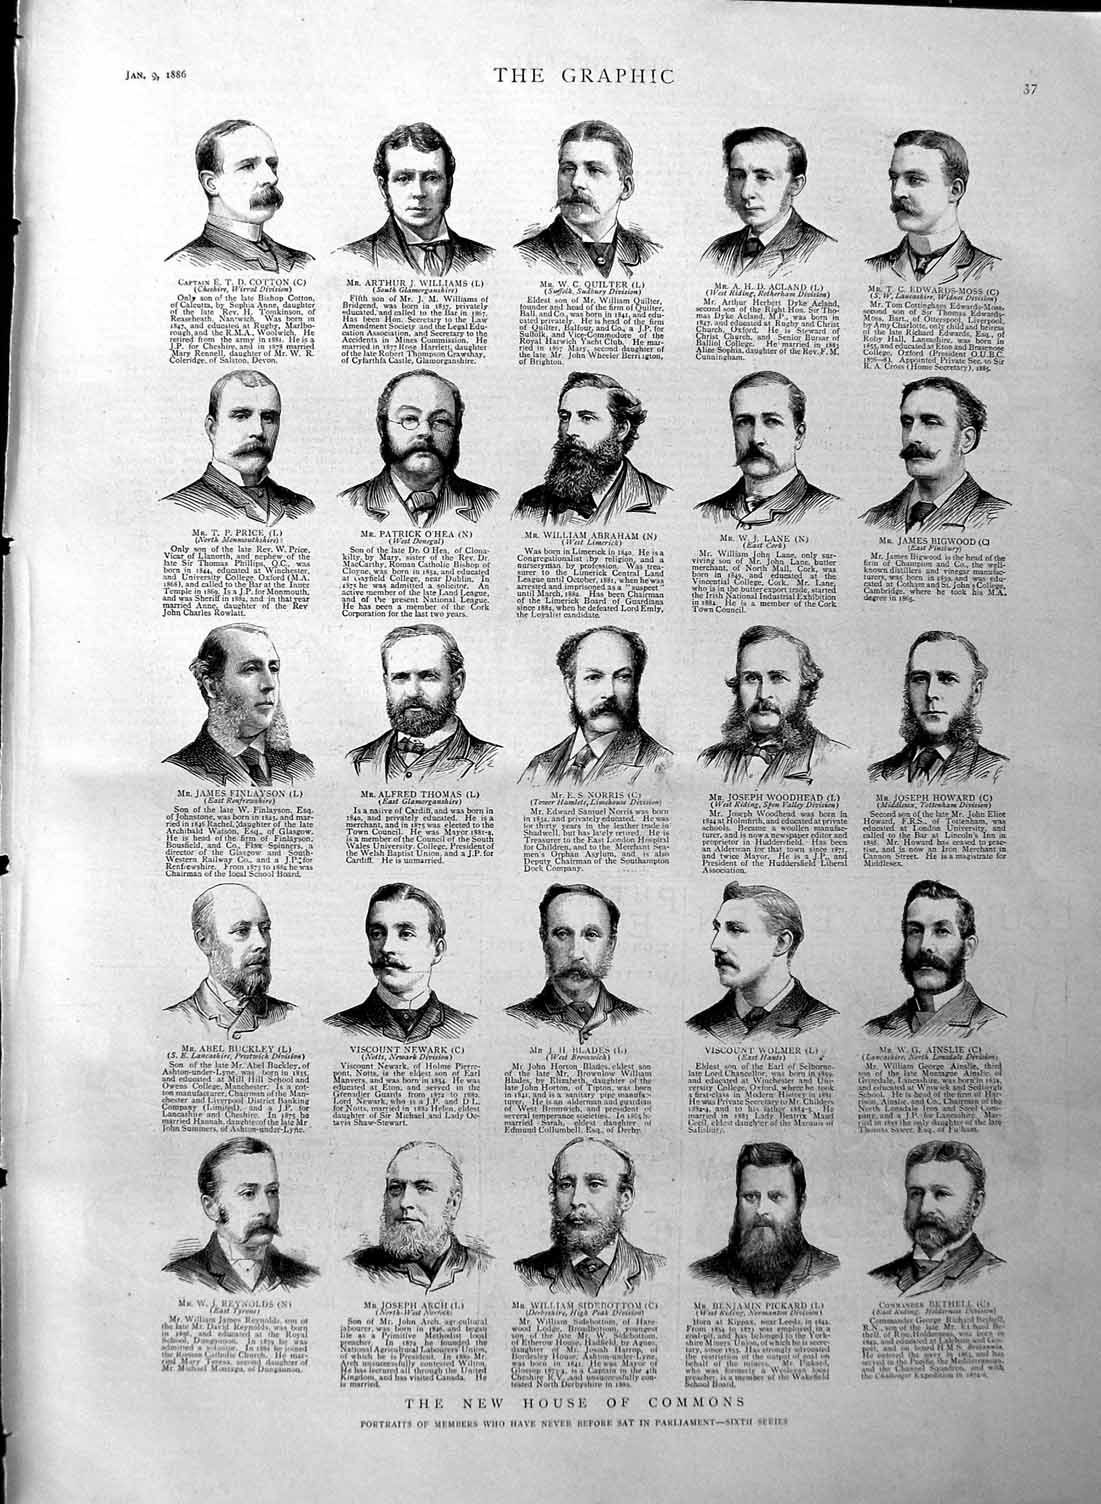 Old-Antique-Print-1886-Commons-Quilter-Abraham-Norris-Blades-Arch-Newark-19th